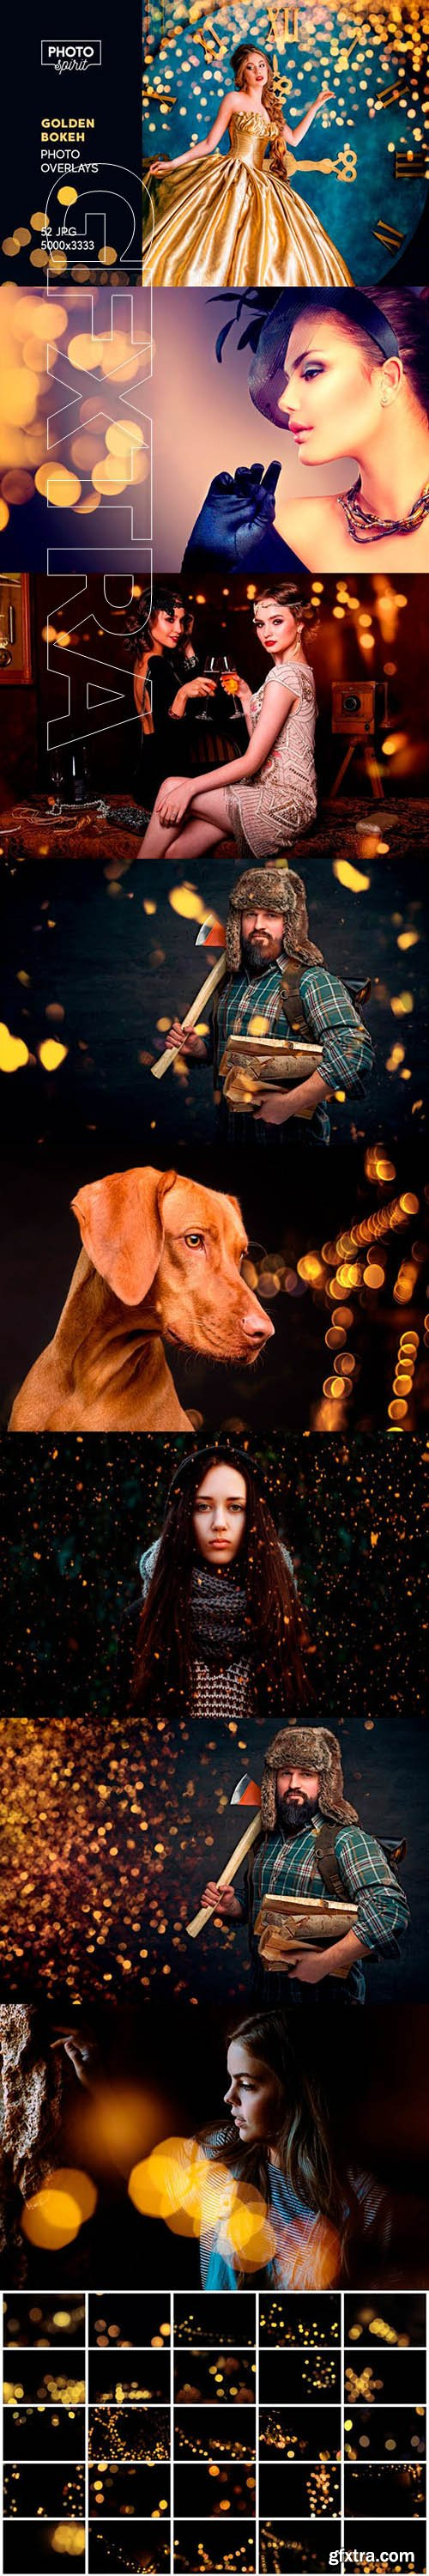 GraphicRiver - Golden Bokeh Photo Overlay Effects 22986453